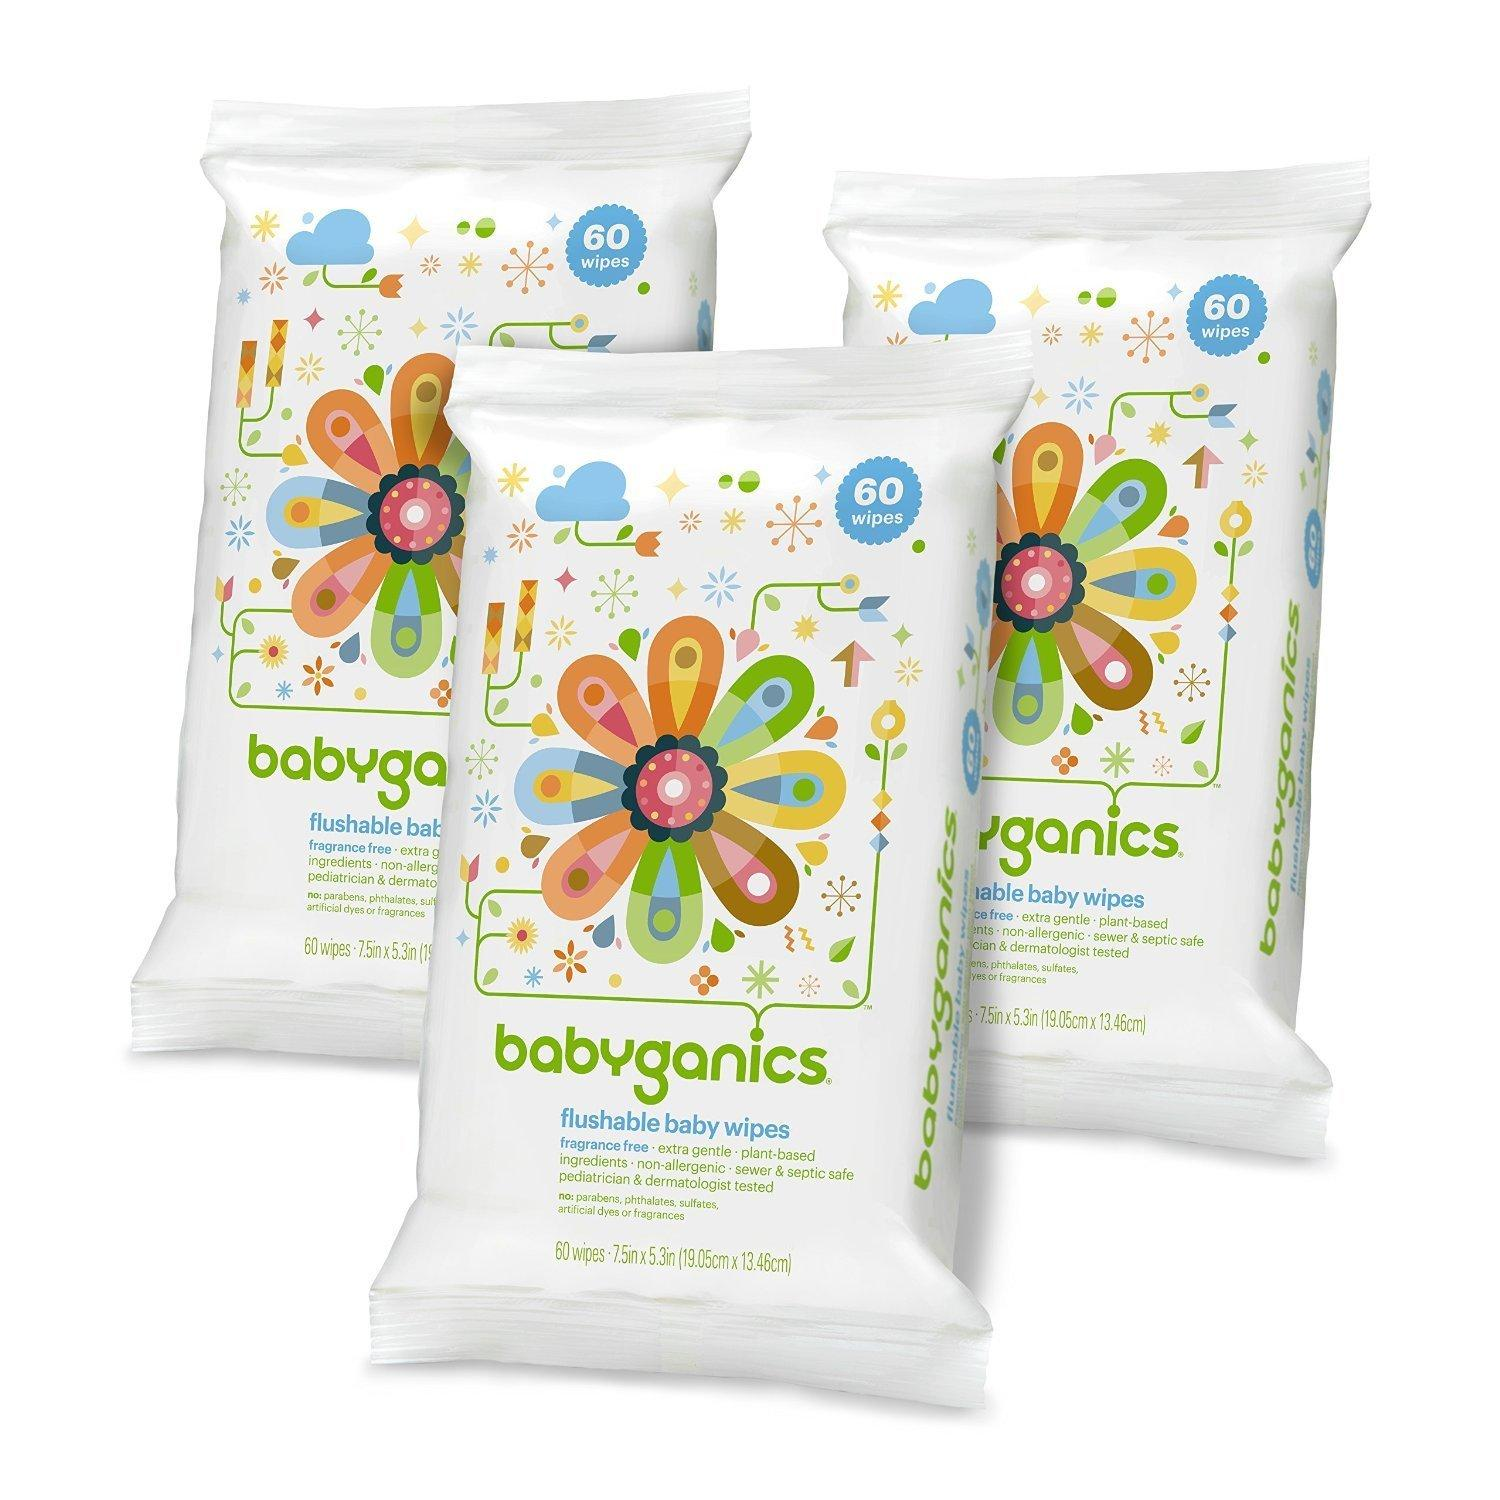 $5.56 Babyganics Flushable Baby Wipes, Fragrance Free, 60 Count (Pack of 3, 180 Total Wipes)